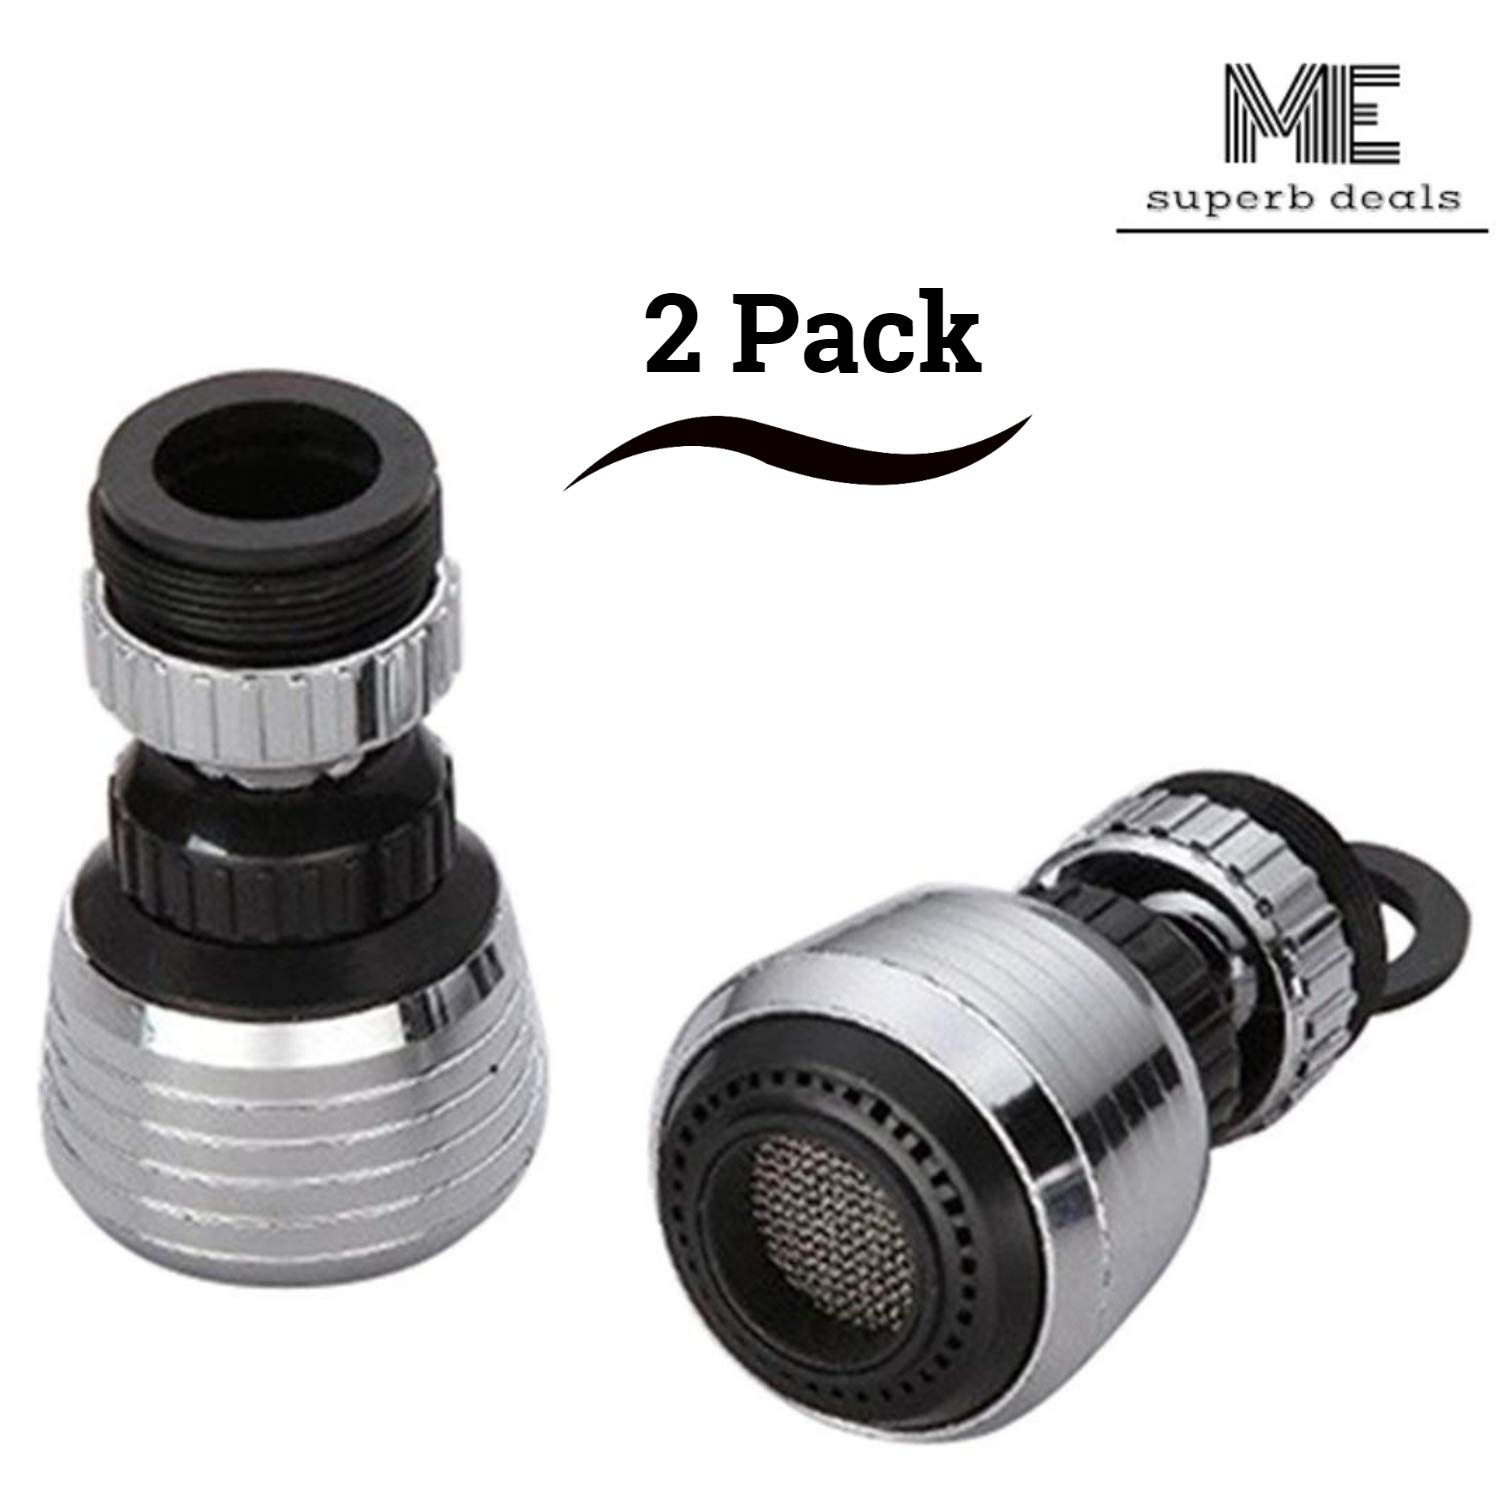 Kitchen Water Saver Tap 360 Rotate Swivel Faucet Nozzle Filter Adapter for Restaurant, Home & Hotel - 2 Pack